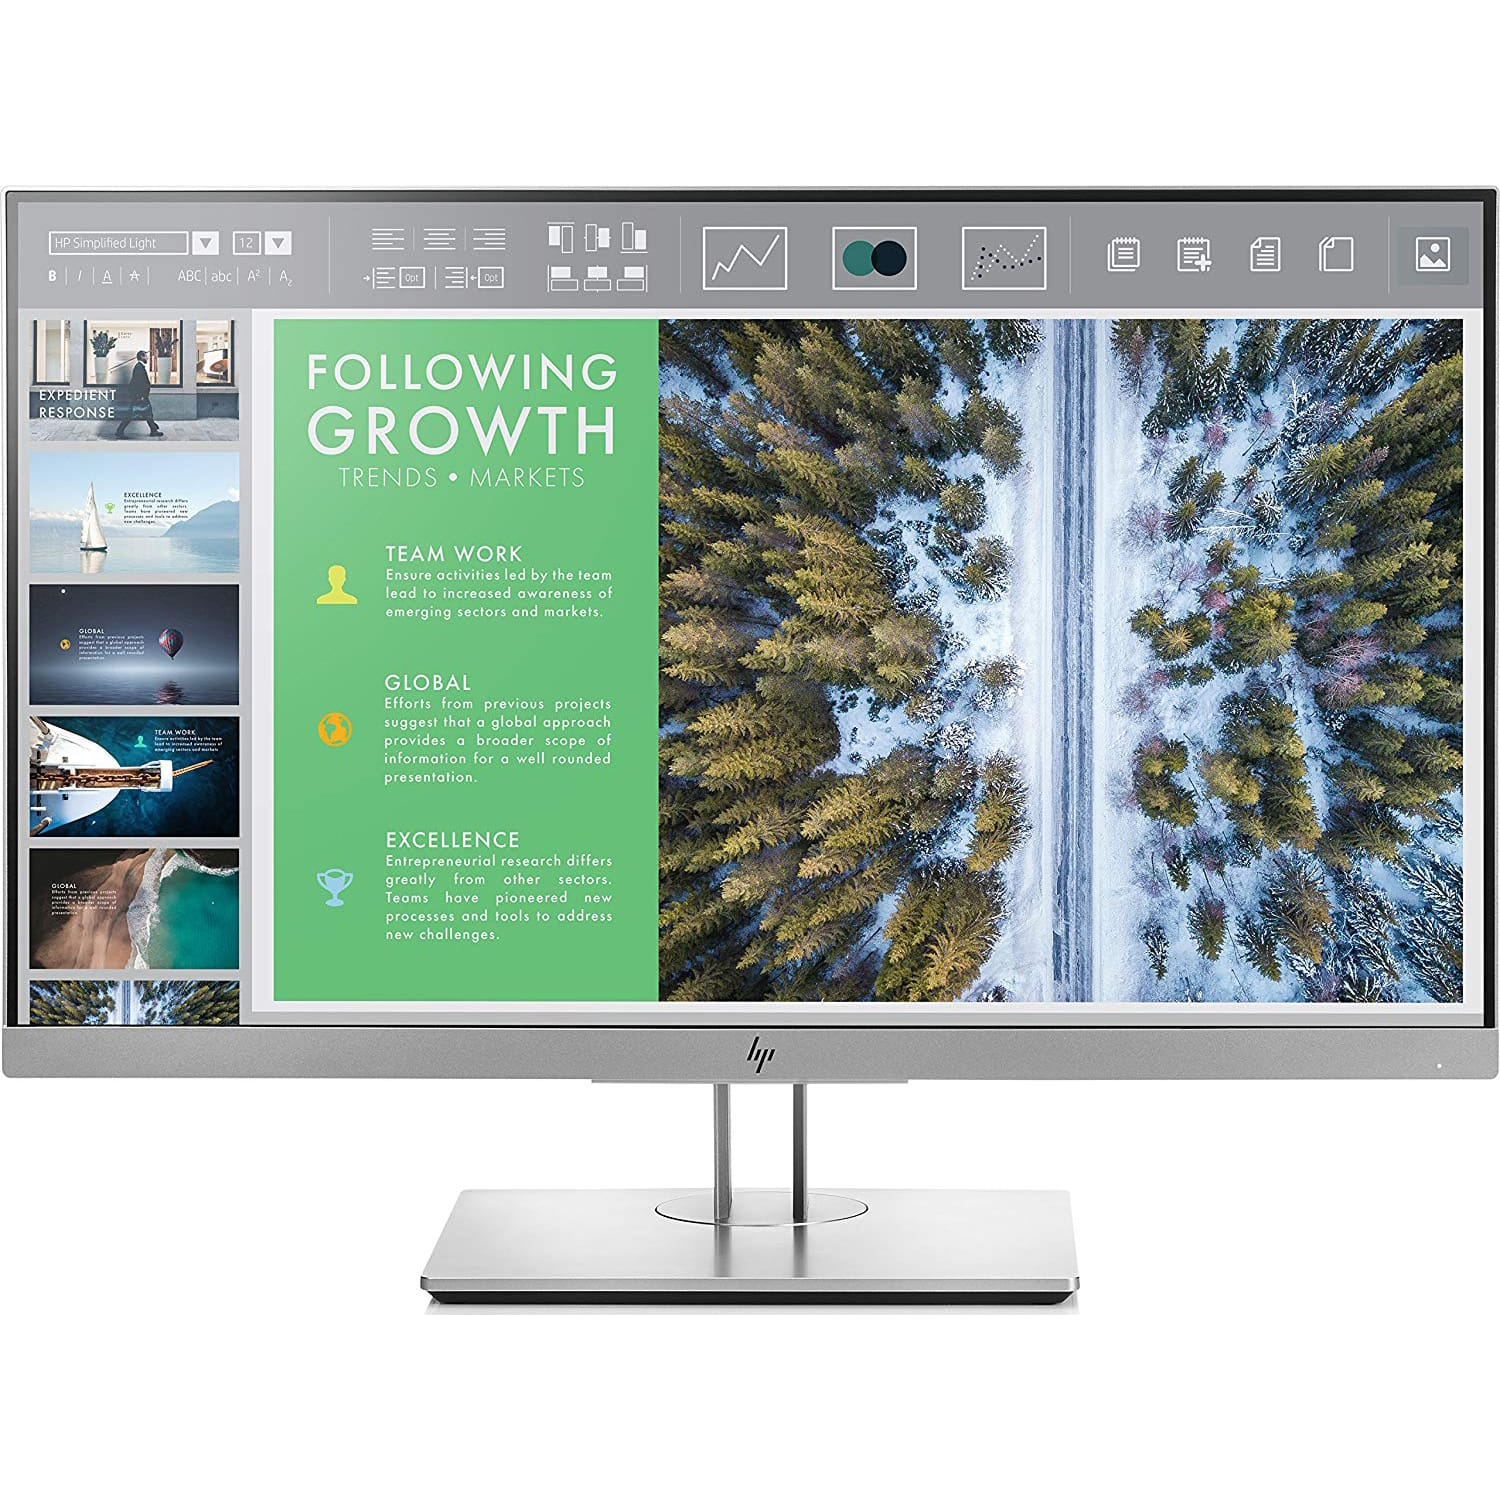 BuyDig Monitors Clearance Sales: LG 29in UltraWide IPS 2580 x 1080